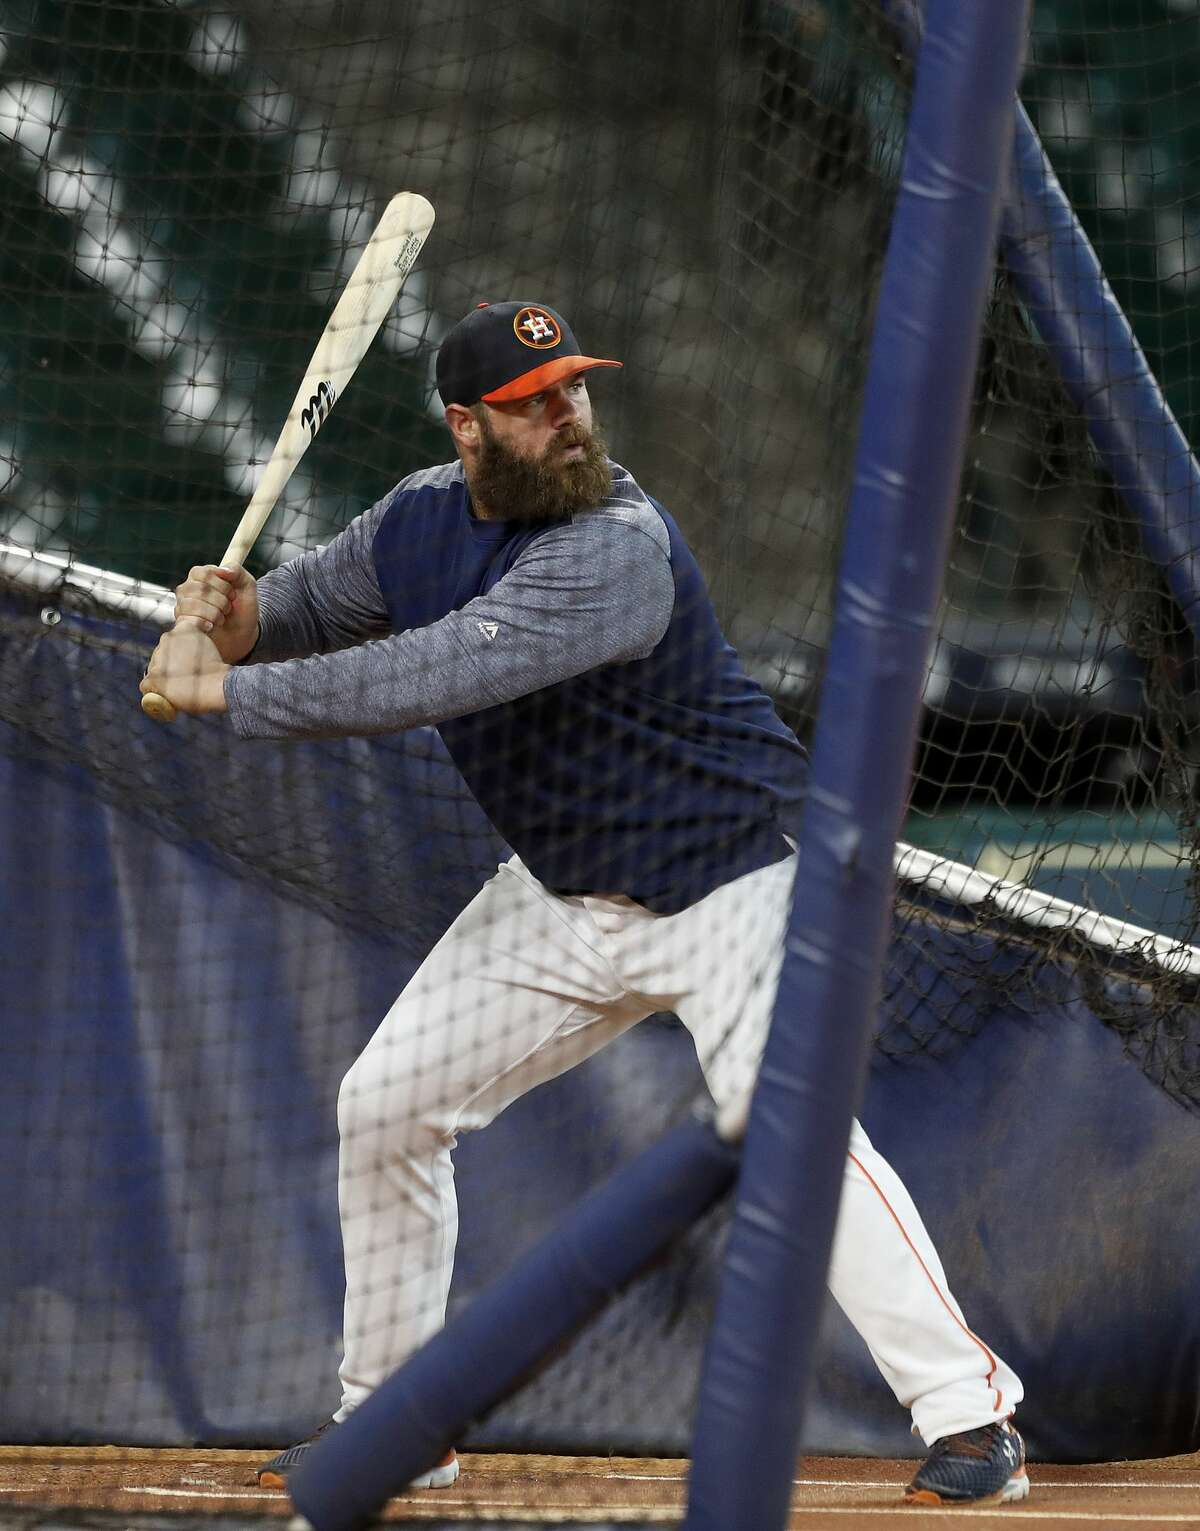 Houston Astros catcher Evan Gattis takes batting practice, as he returns from a concussion, was supposed to have a rehab assignment in Corpus Christi, but was relocated due to Hurricane Harvey at Minute Maid Park, Thursday, Aug. 24, 2017, in Houston. ( Karen Warren / Houston Chronicle )